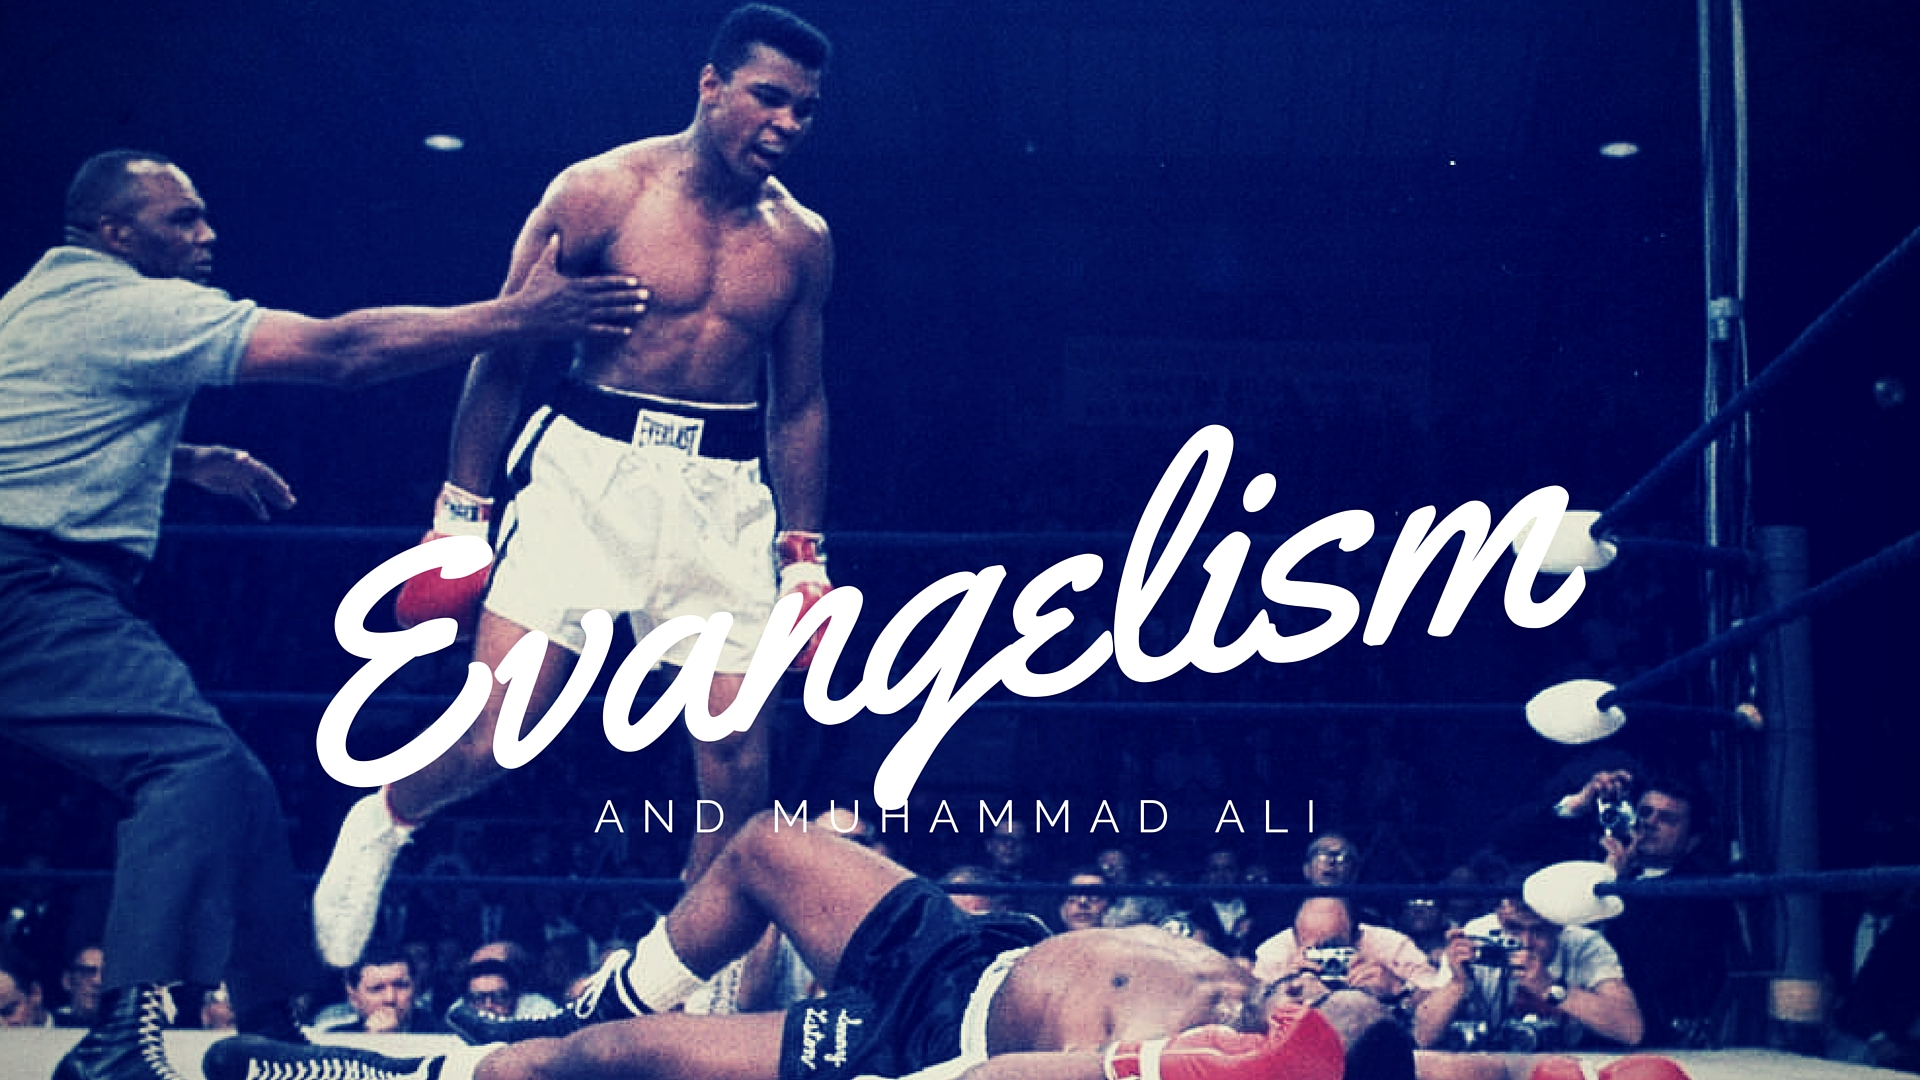 Evangelism and Muhammad Ali